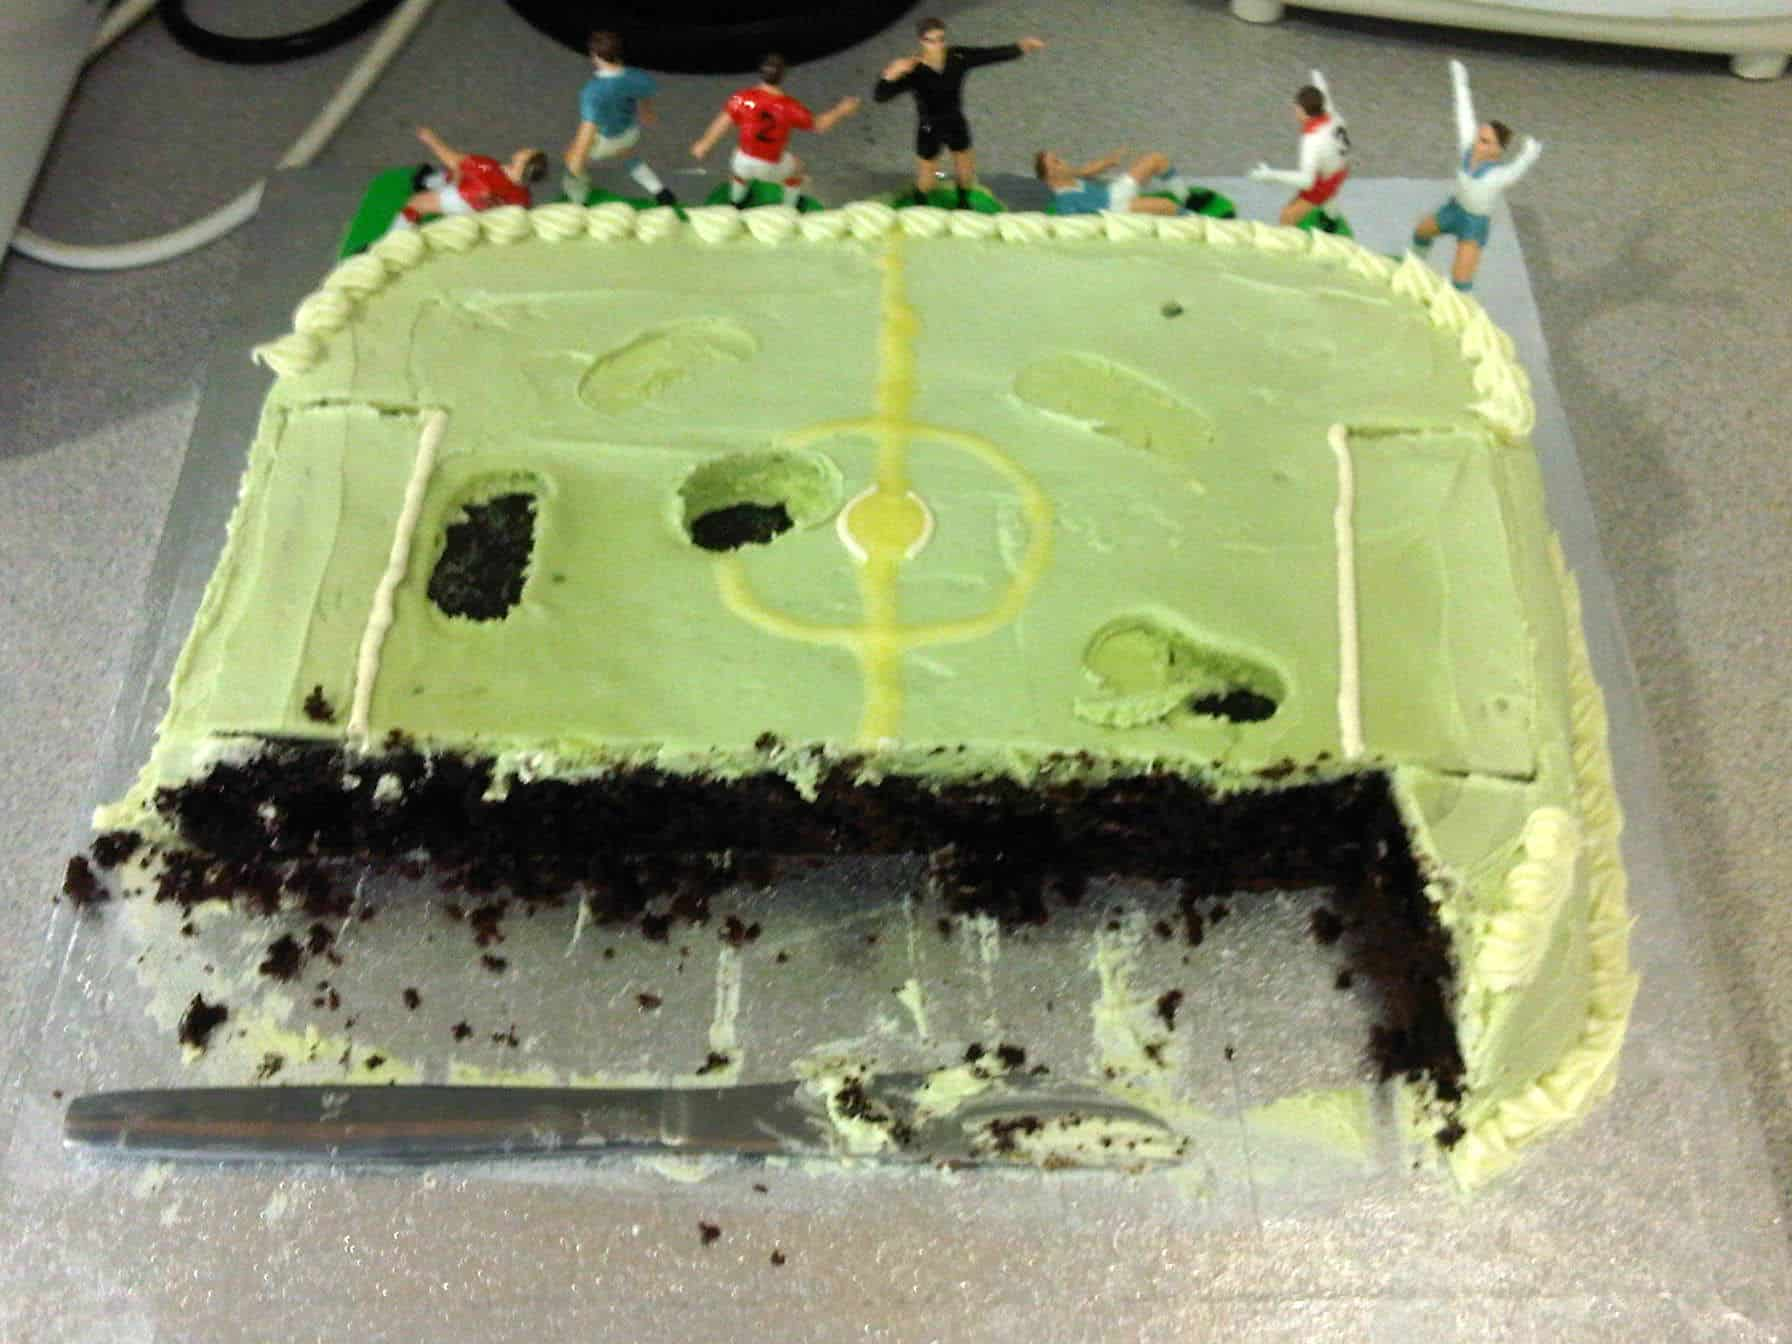 Simple football pitch cake with figurines